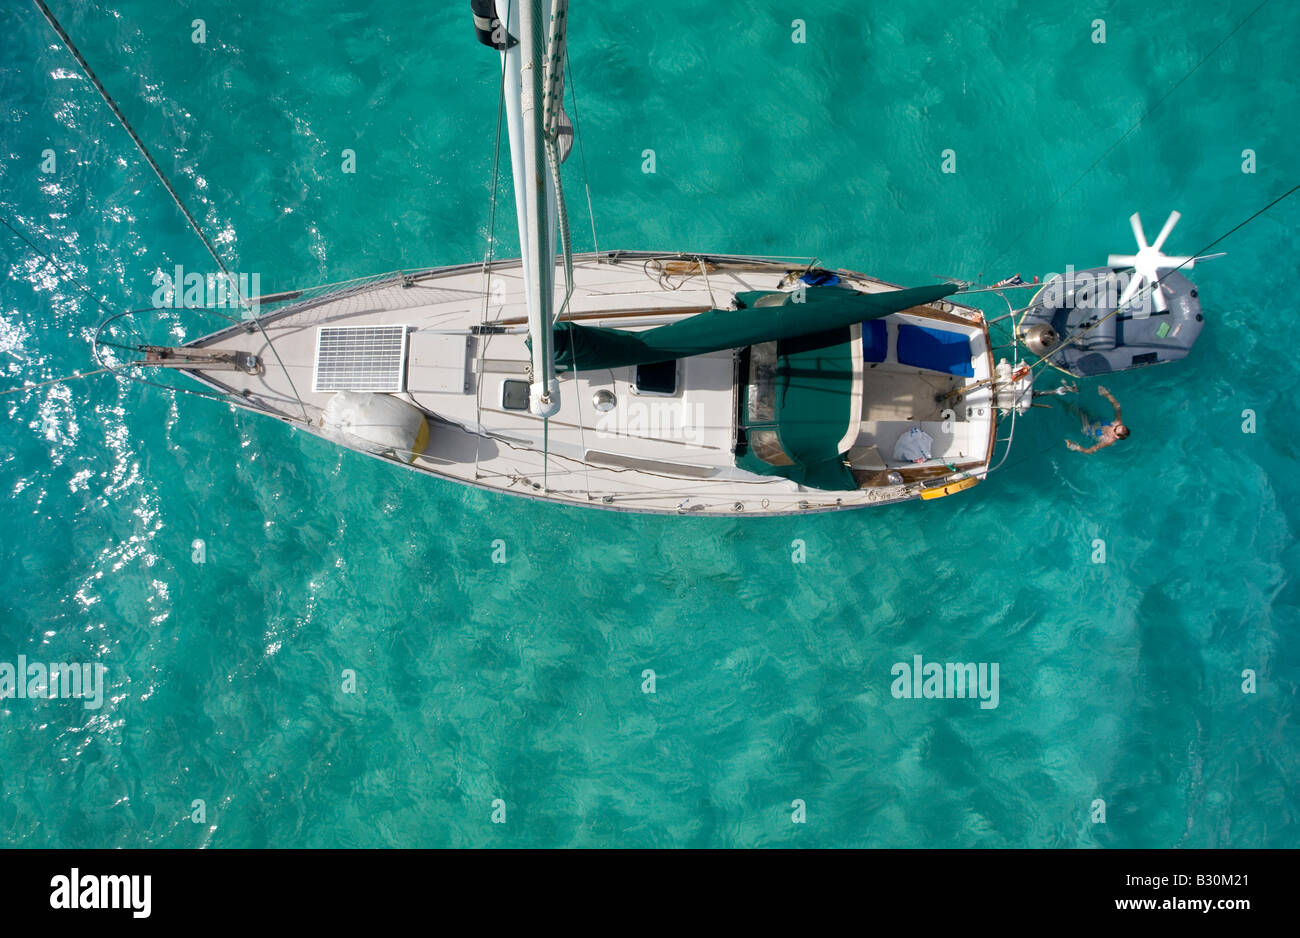 Looking down at a cruising sailboat in the Caribbean The first mate is having a swim - Stock Image